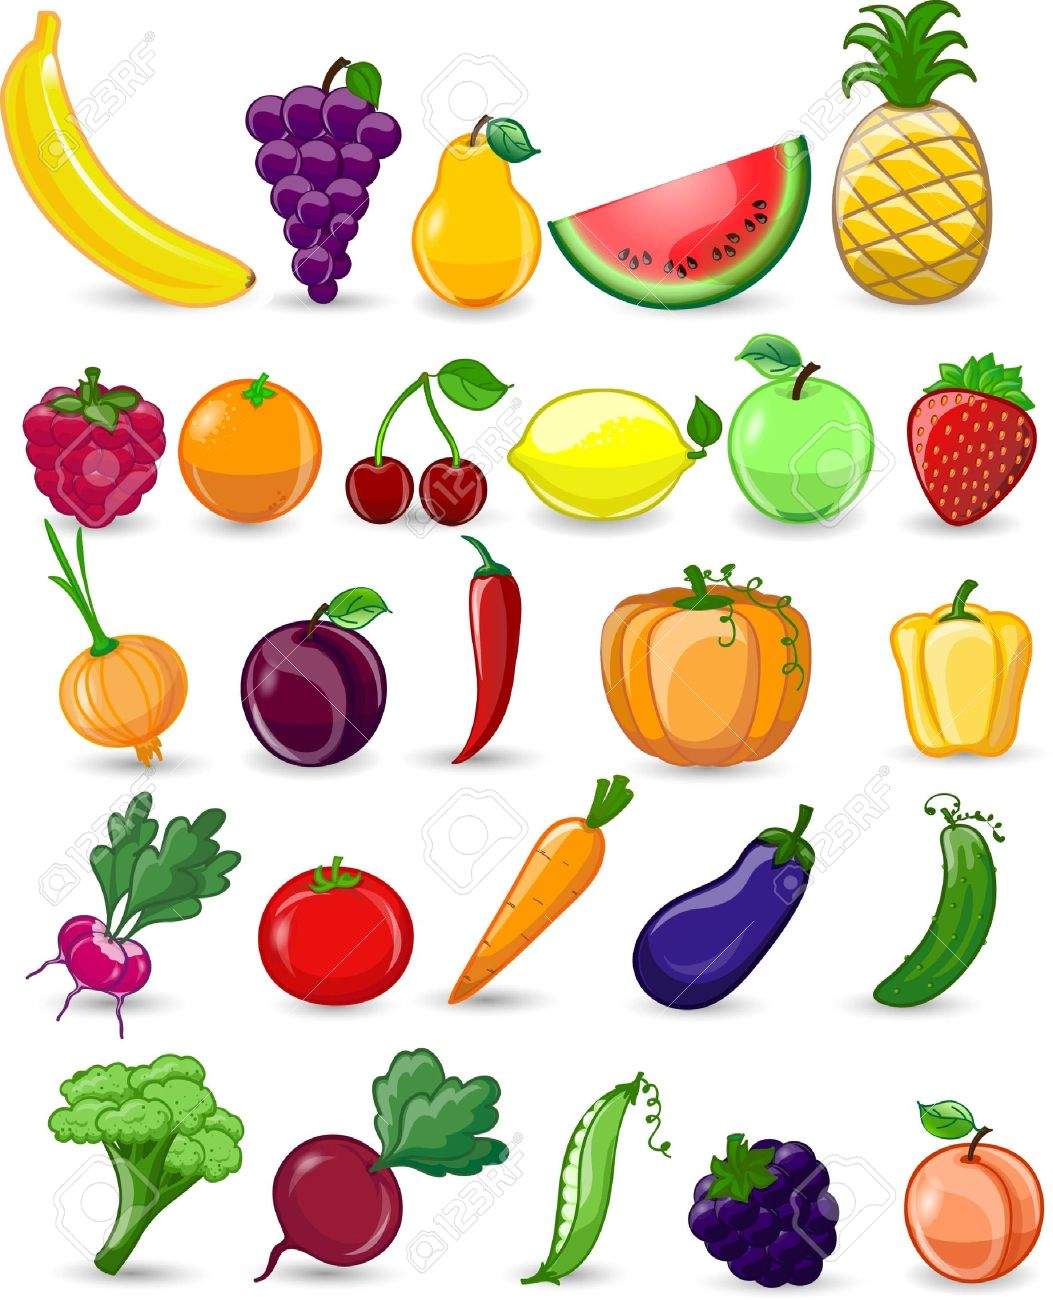 Fruit Dessin cartoon vegetables and fruits royalty free cliparts, vectors, and